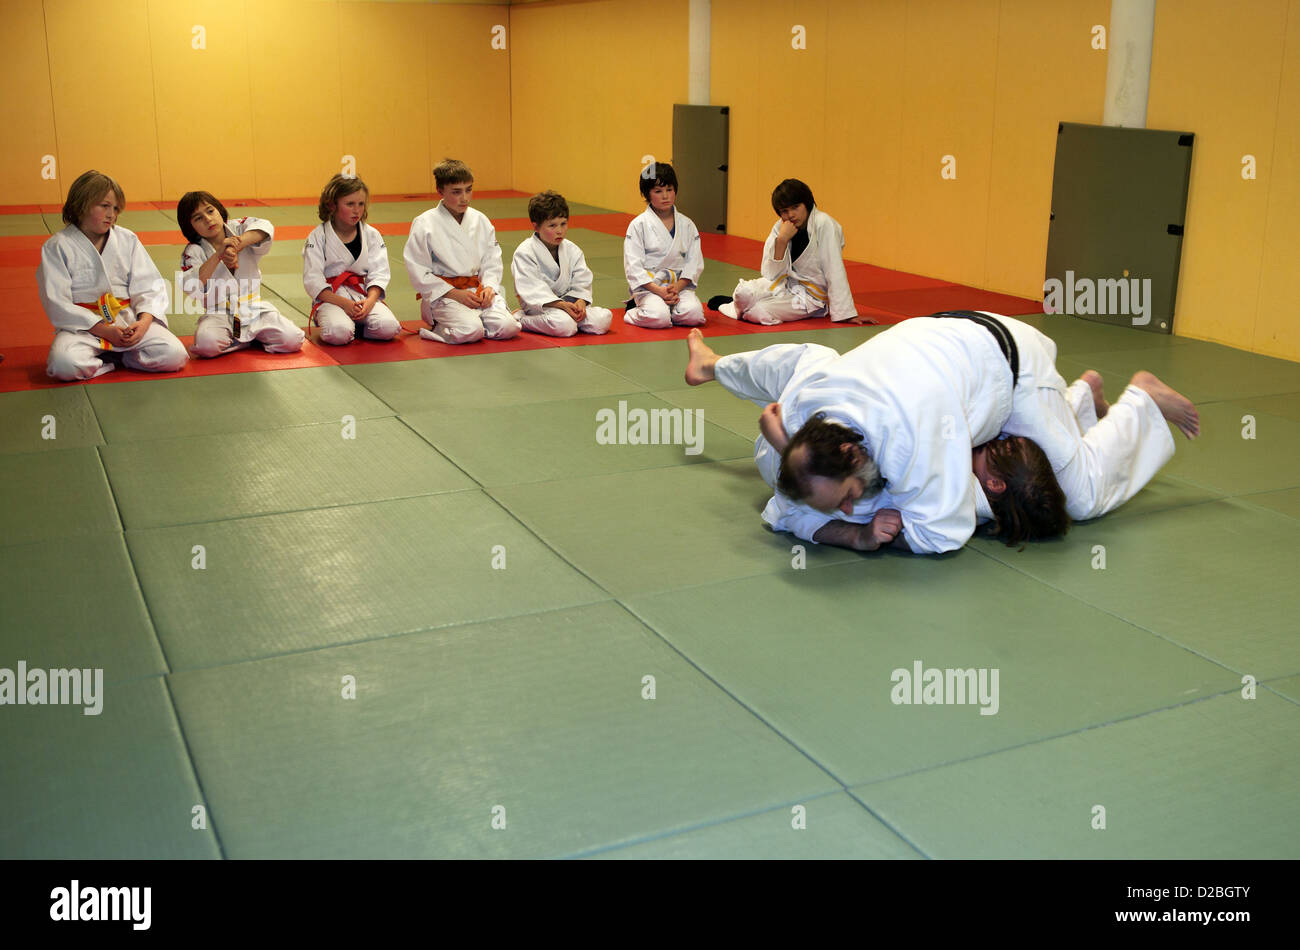 Berlin, Germany, children in a judo course. Judo instructor shows a throwing technique - Stock Image